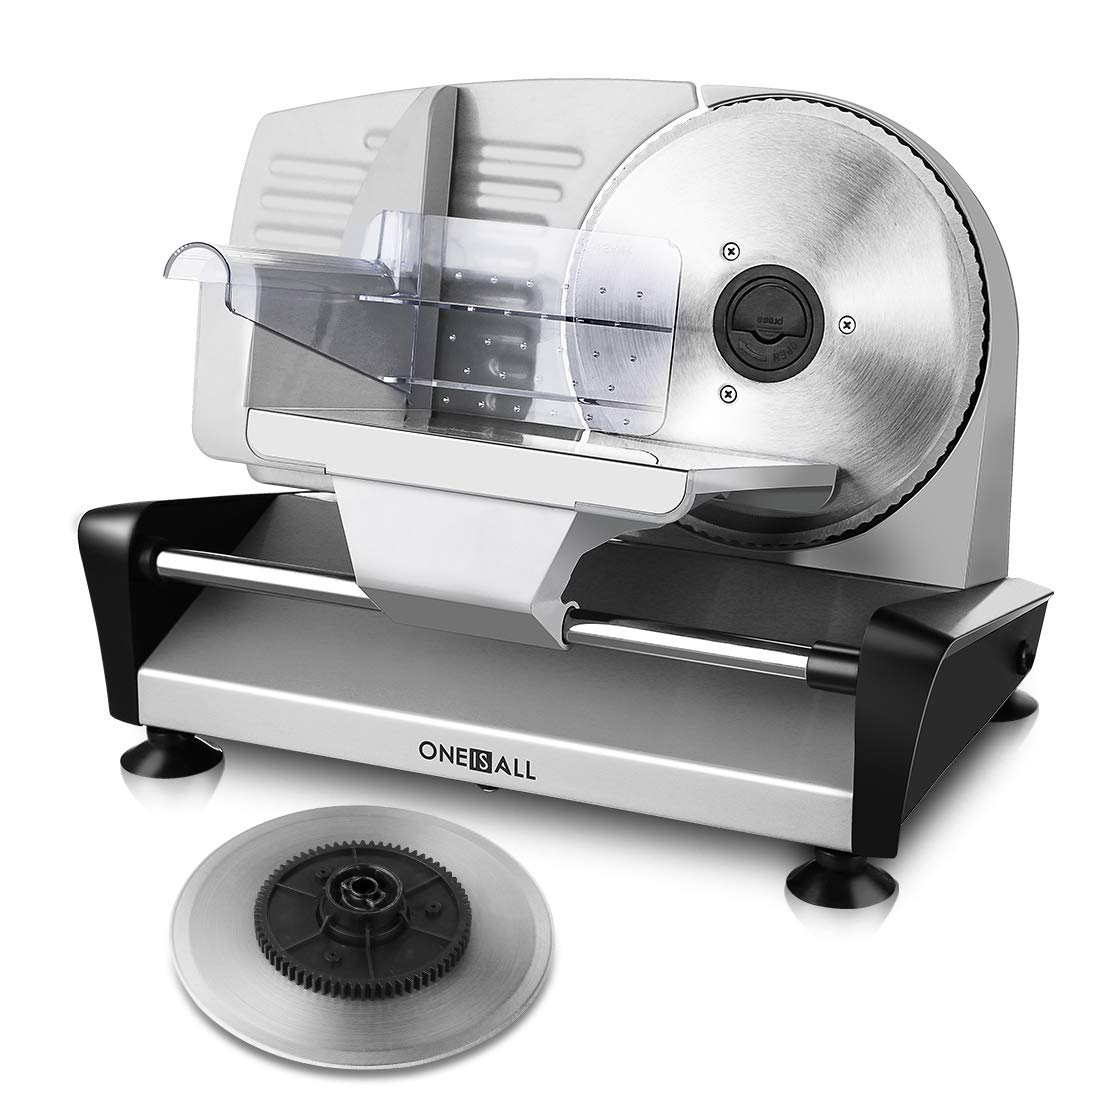 Meat Slicer Electric Deli Food Slicer with 2 Interchangeable Blades, Oneisall Removable 7.5'' Stainless Steel Blade & Food Carriage, Precisely Adjustable Thickness Cuts Meat, Non-Slip Feet (150W) by oneisall